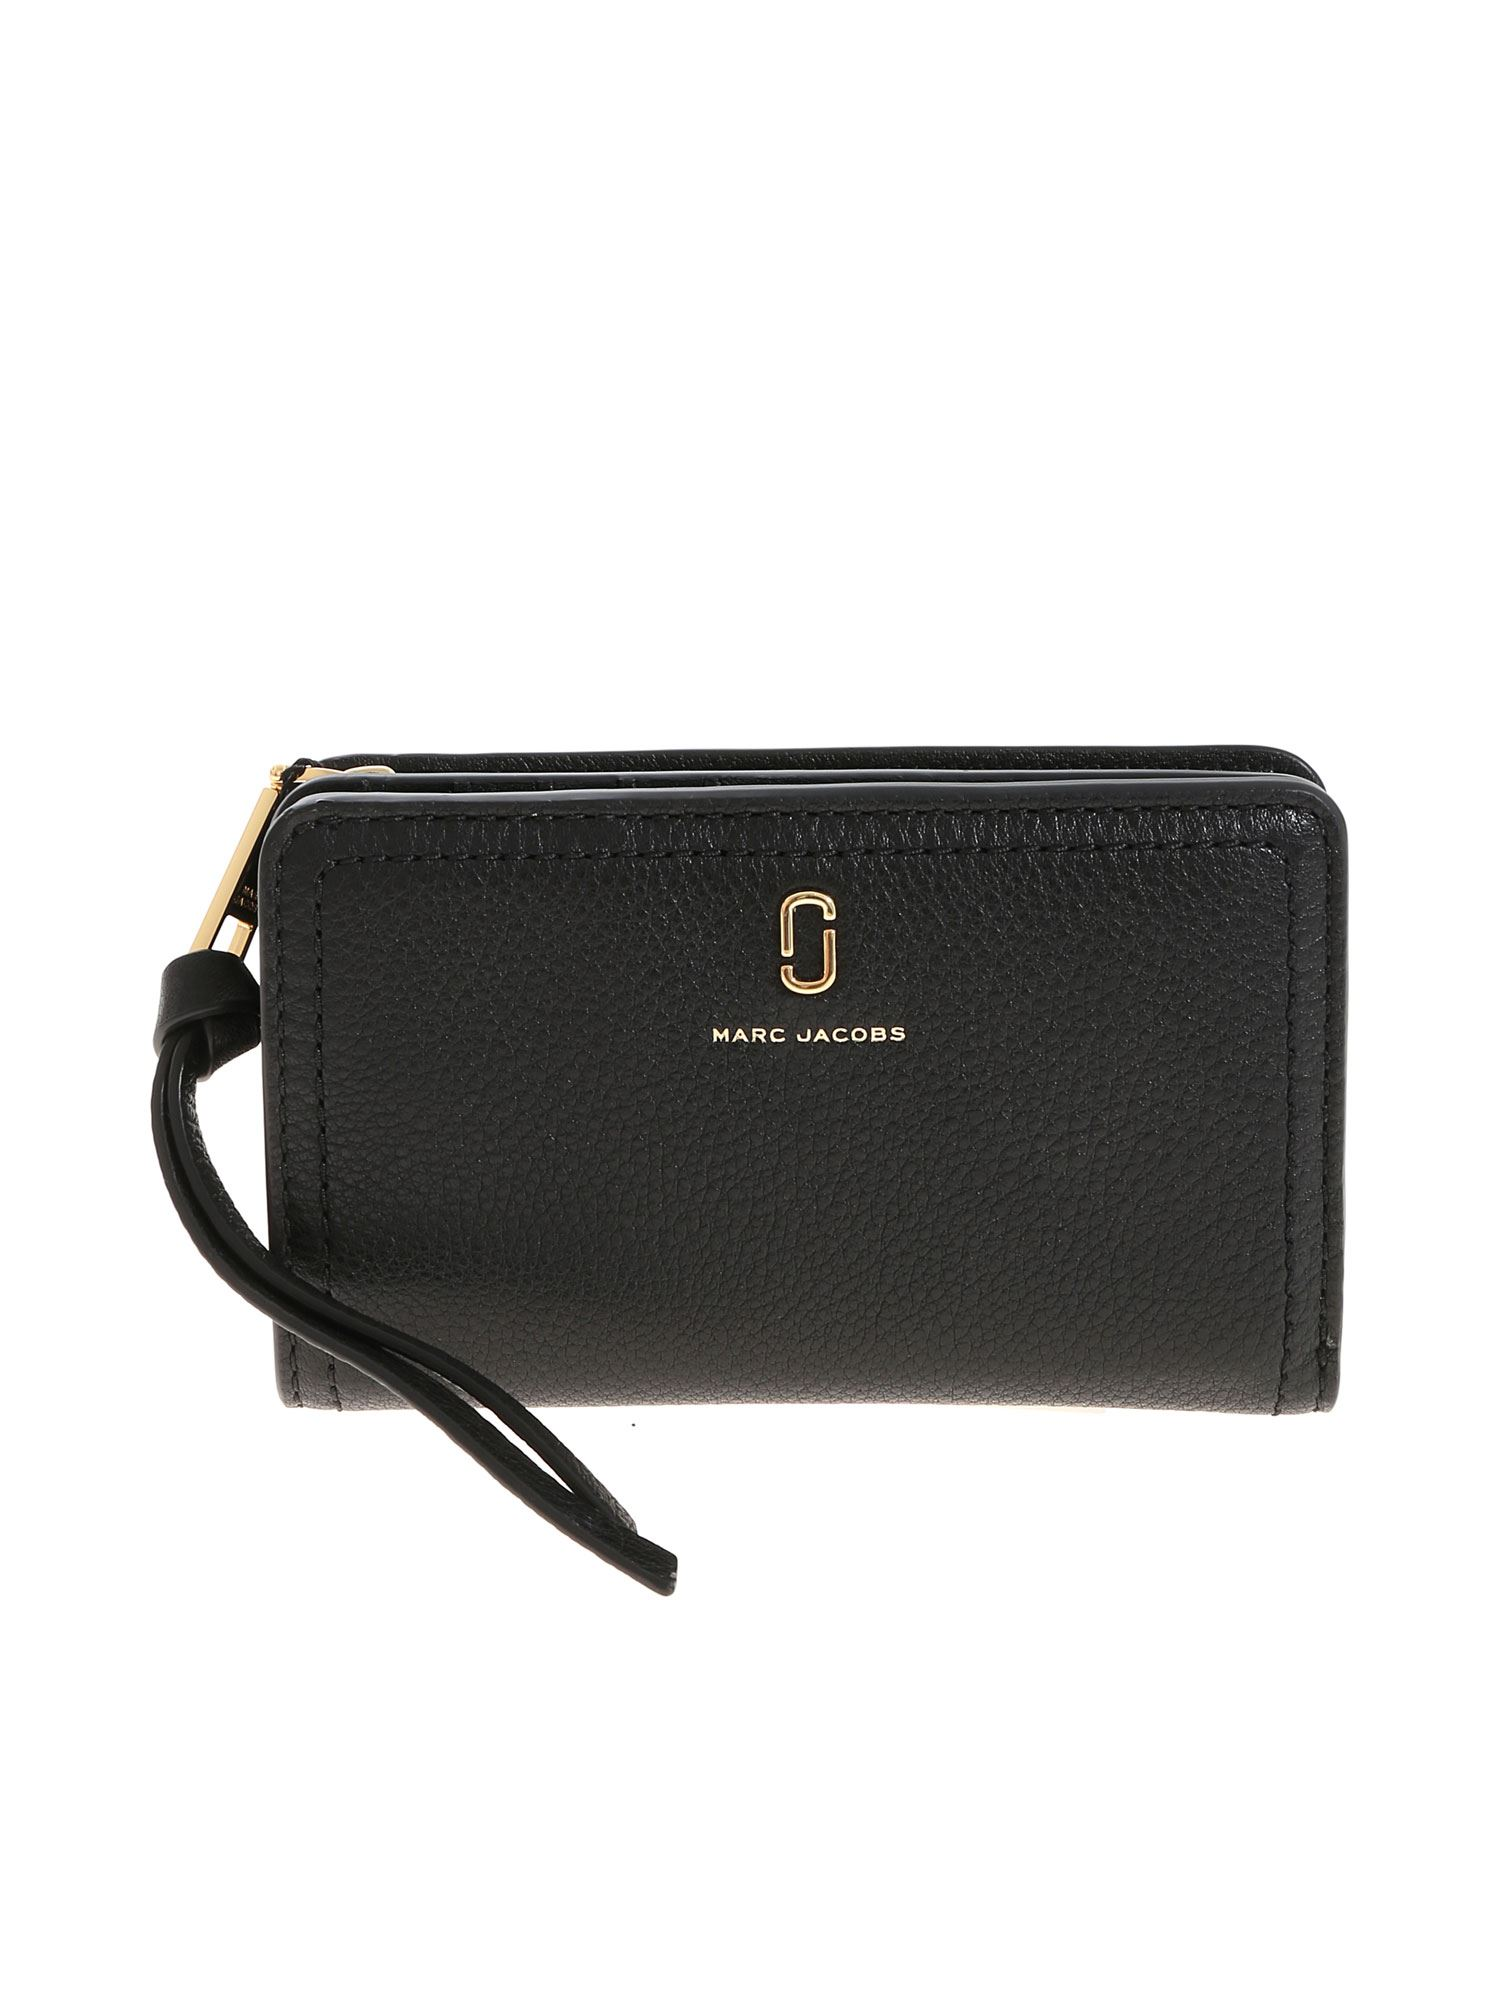 Marc By Marc Jacobs Black Wallet With Golden Logo